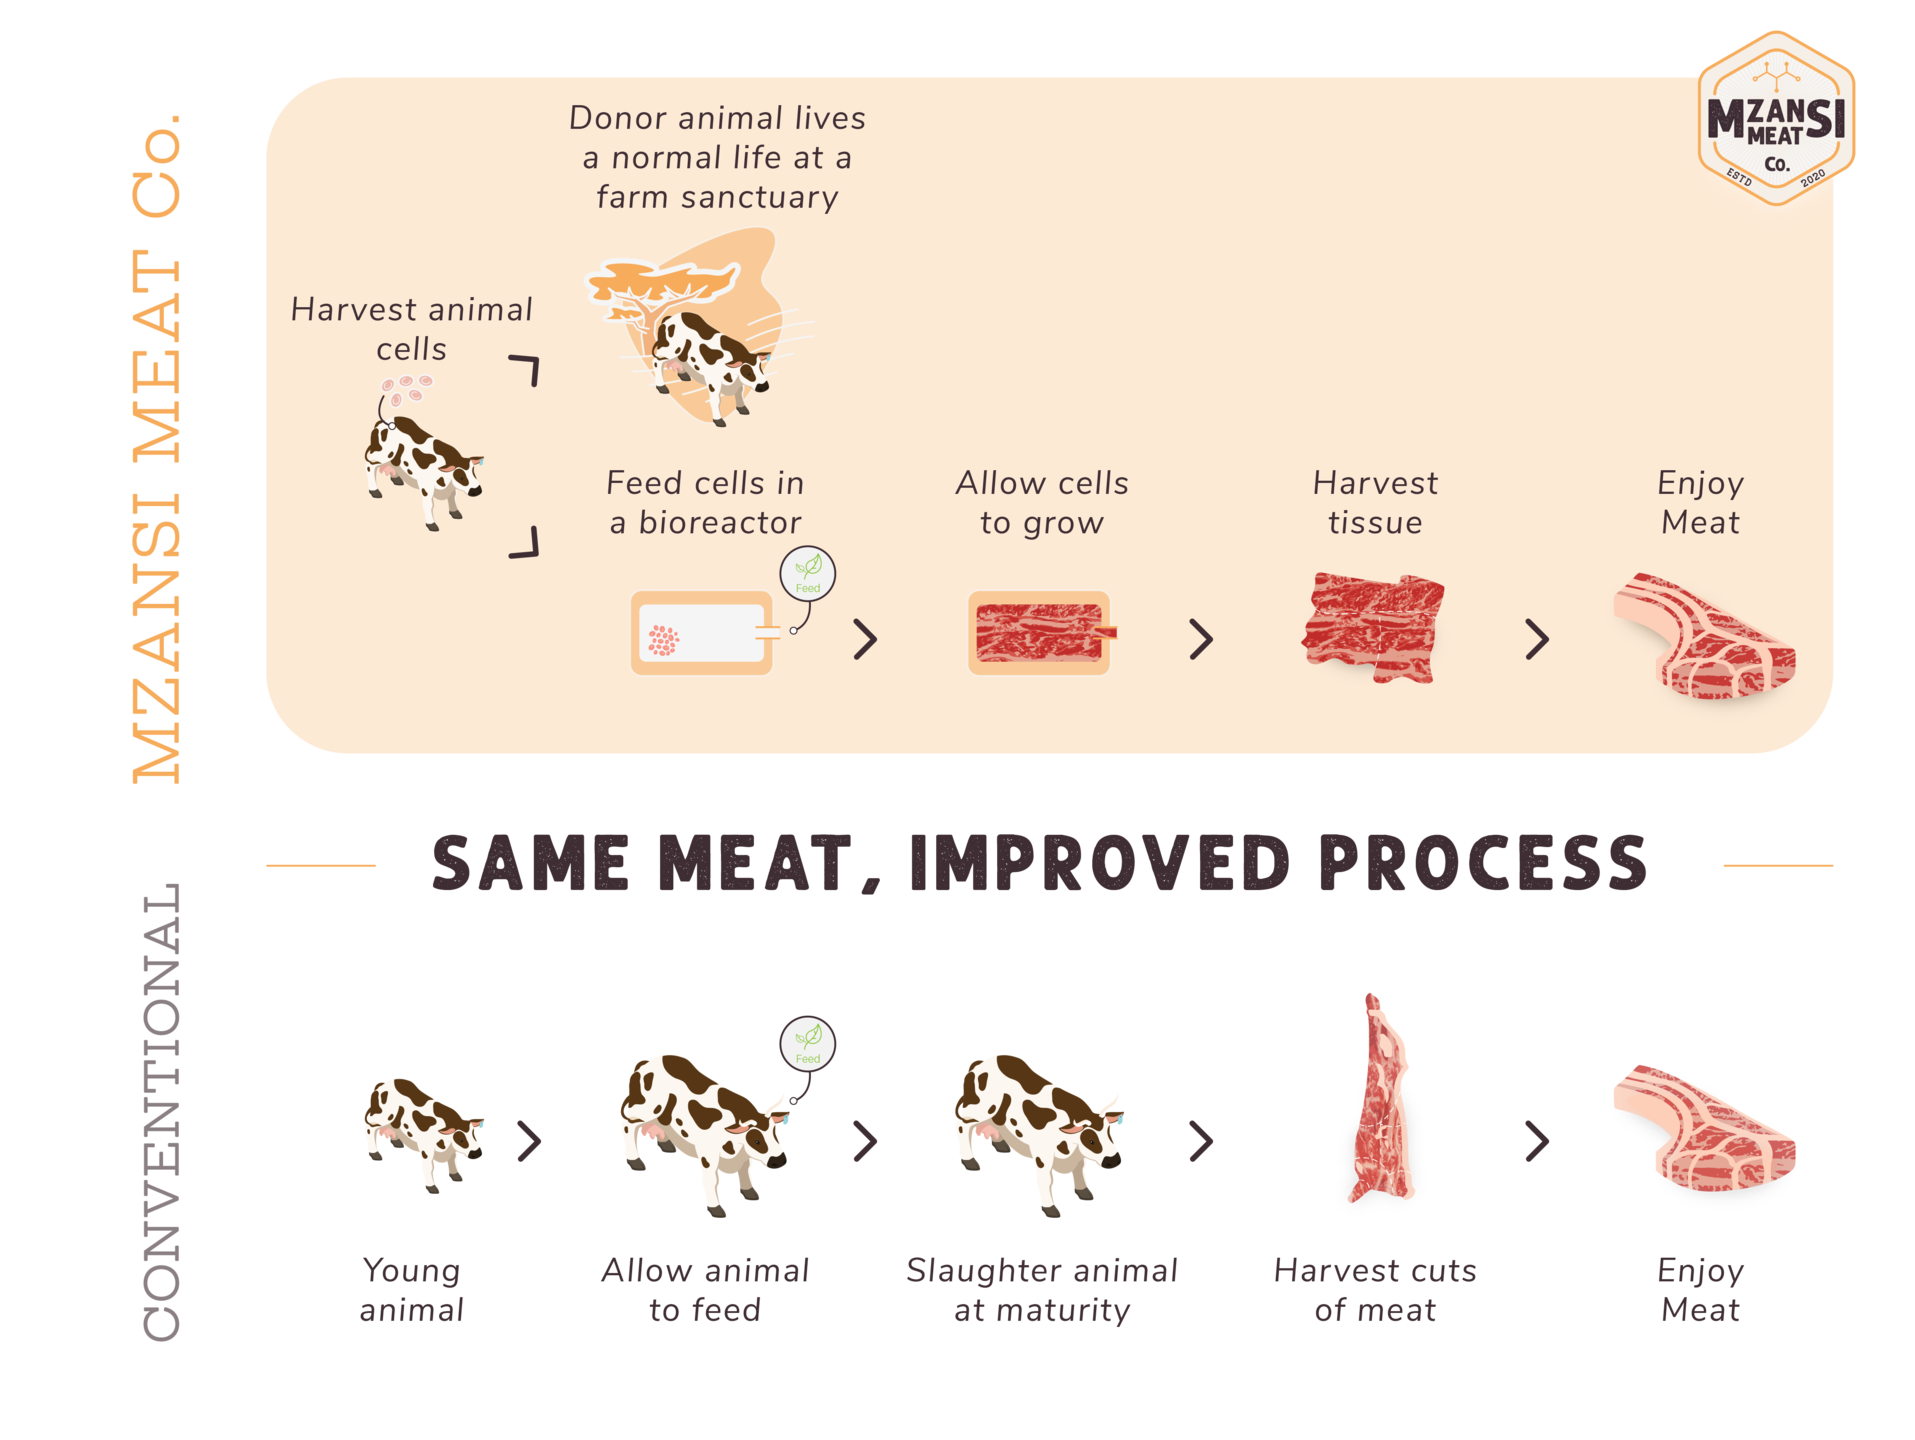 Making meat from cells by Mzansi Meat